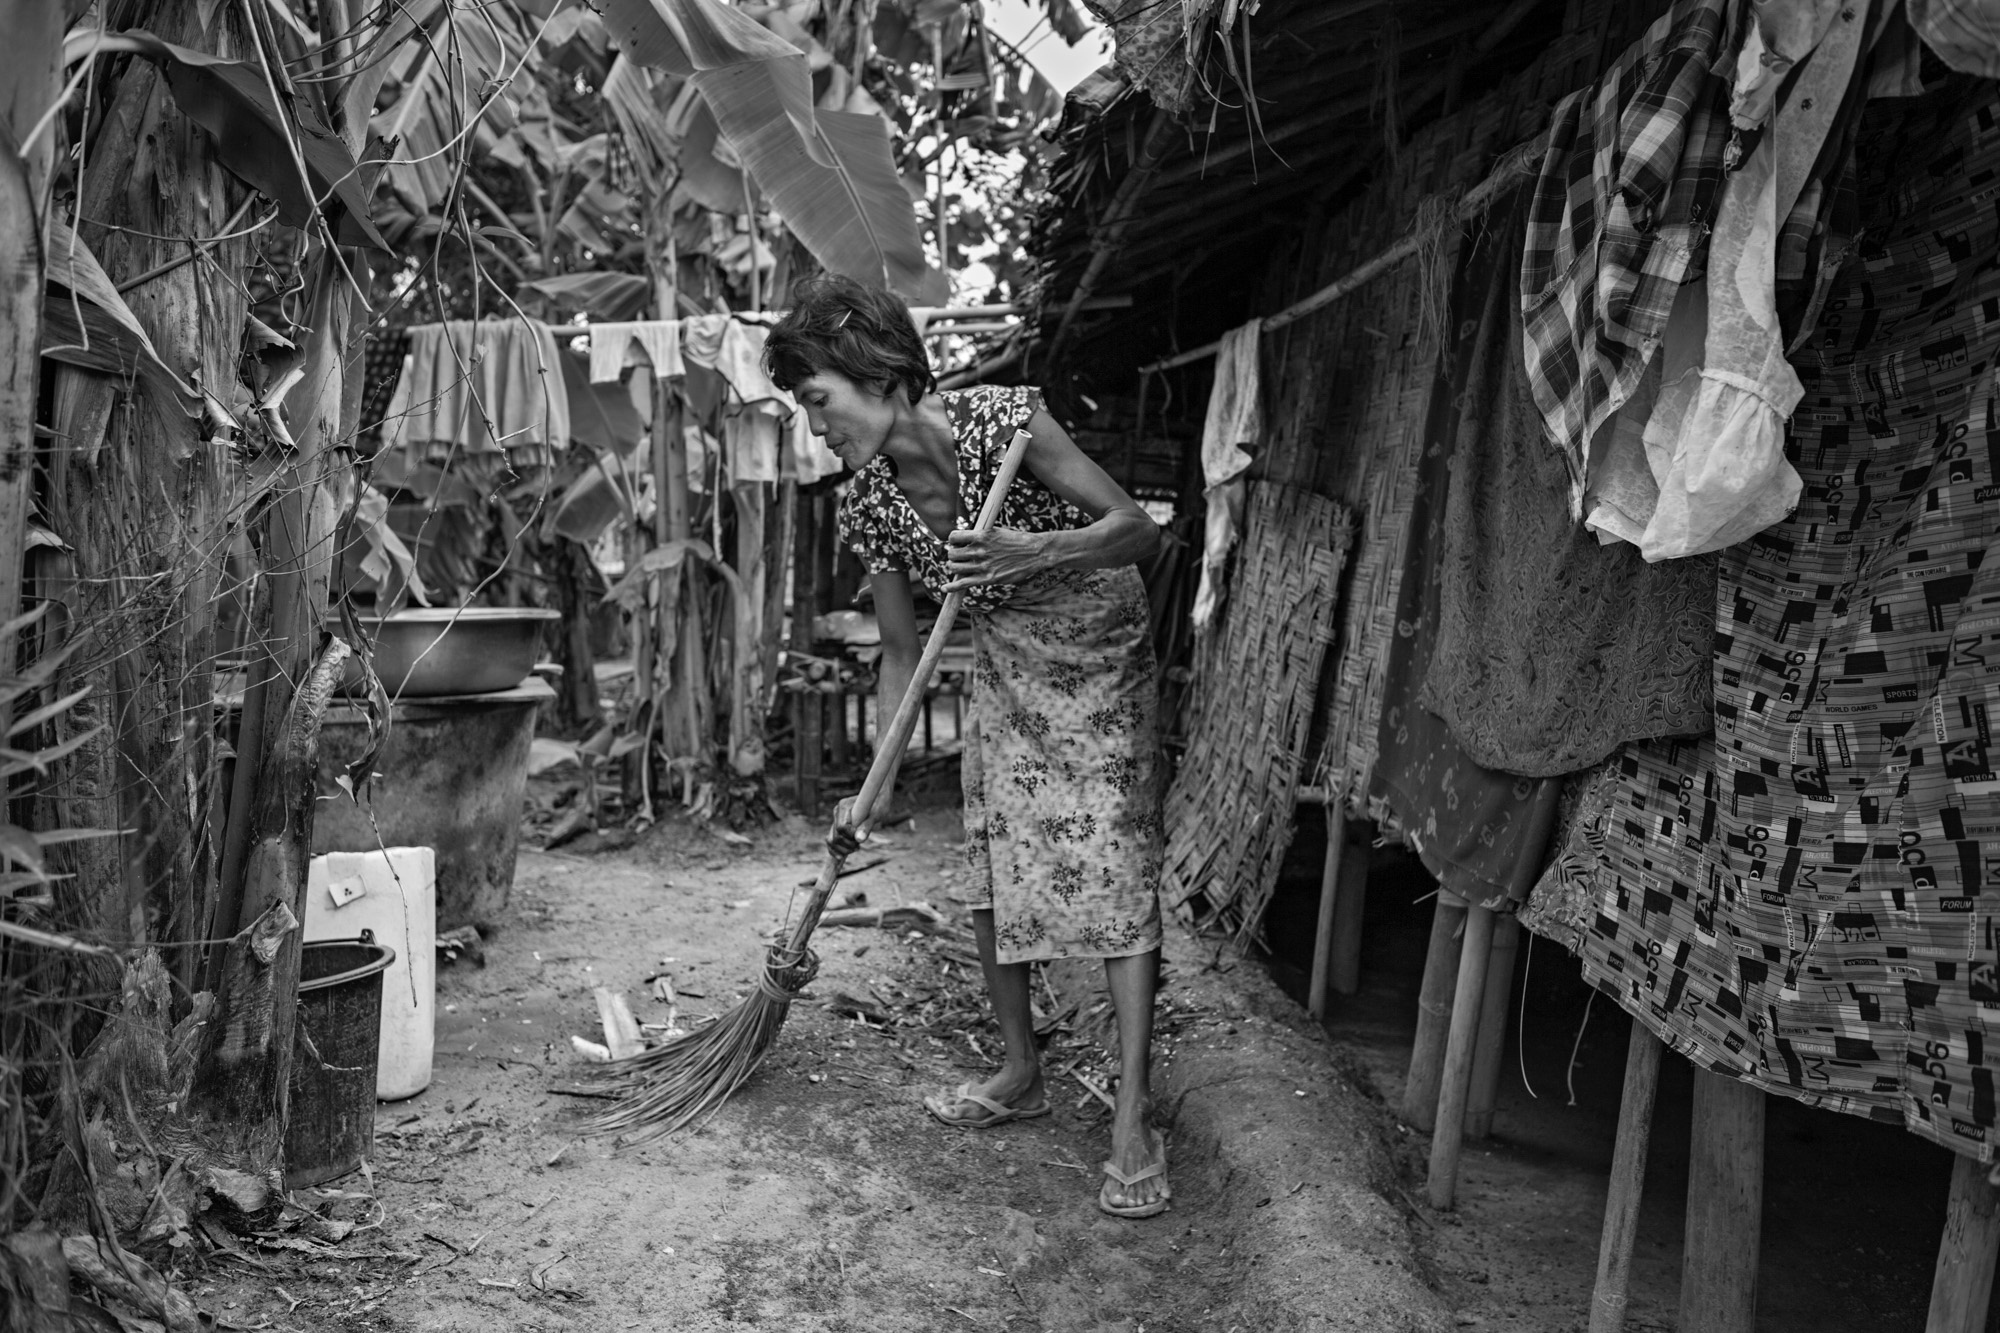 Than Nwe Sweeps up the area around her hut. In addition to earning money, she also cooks, keeps the house, gardens, cares for the children, and takes care of most of the discipline. After her husband died, the amount of work and responsibility increased.